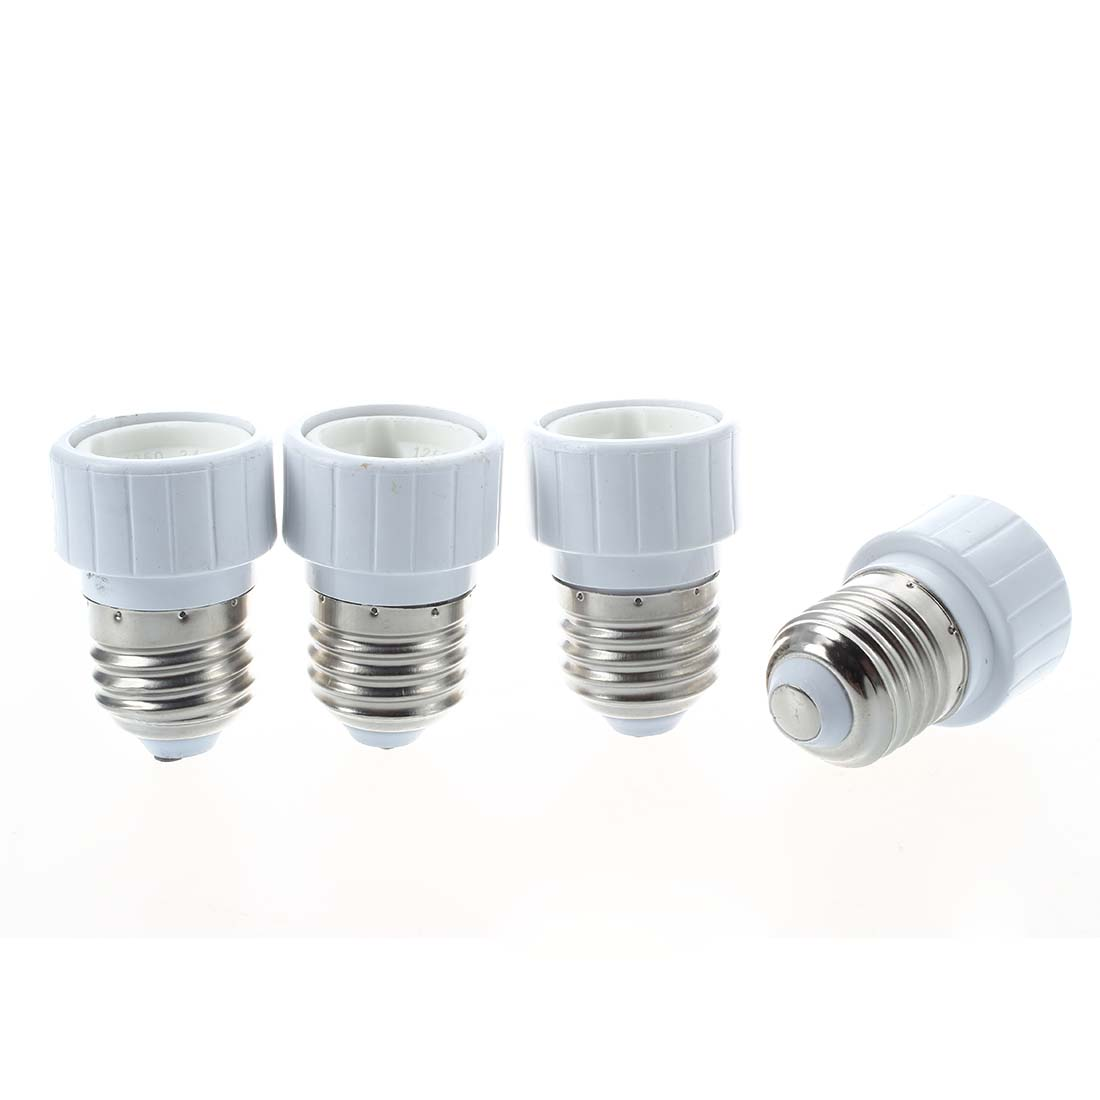 4x E27 to GU10 LED light socket adapter socket adapter lamp bulb Converter White